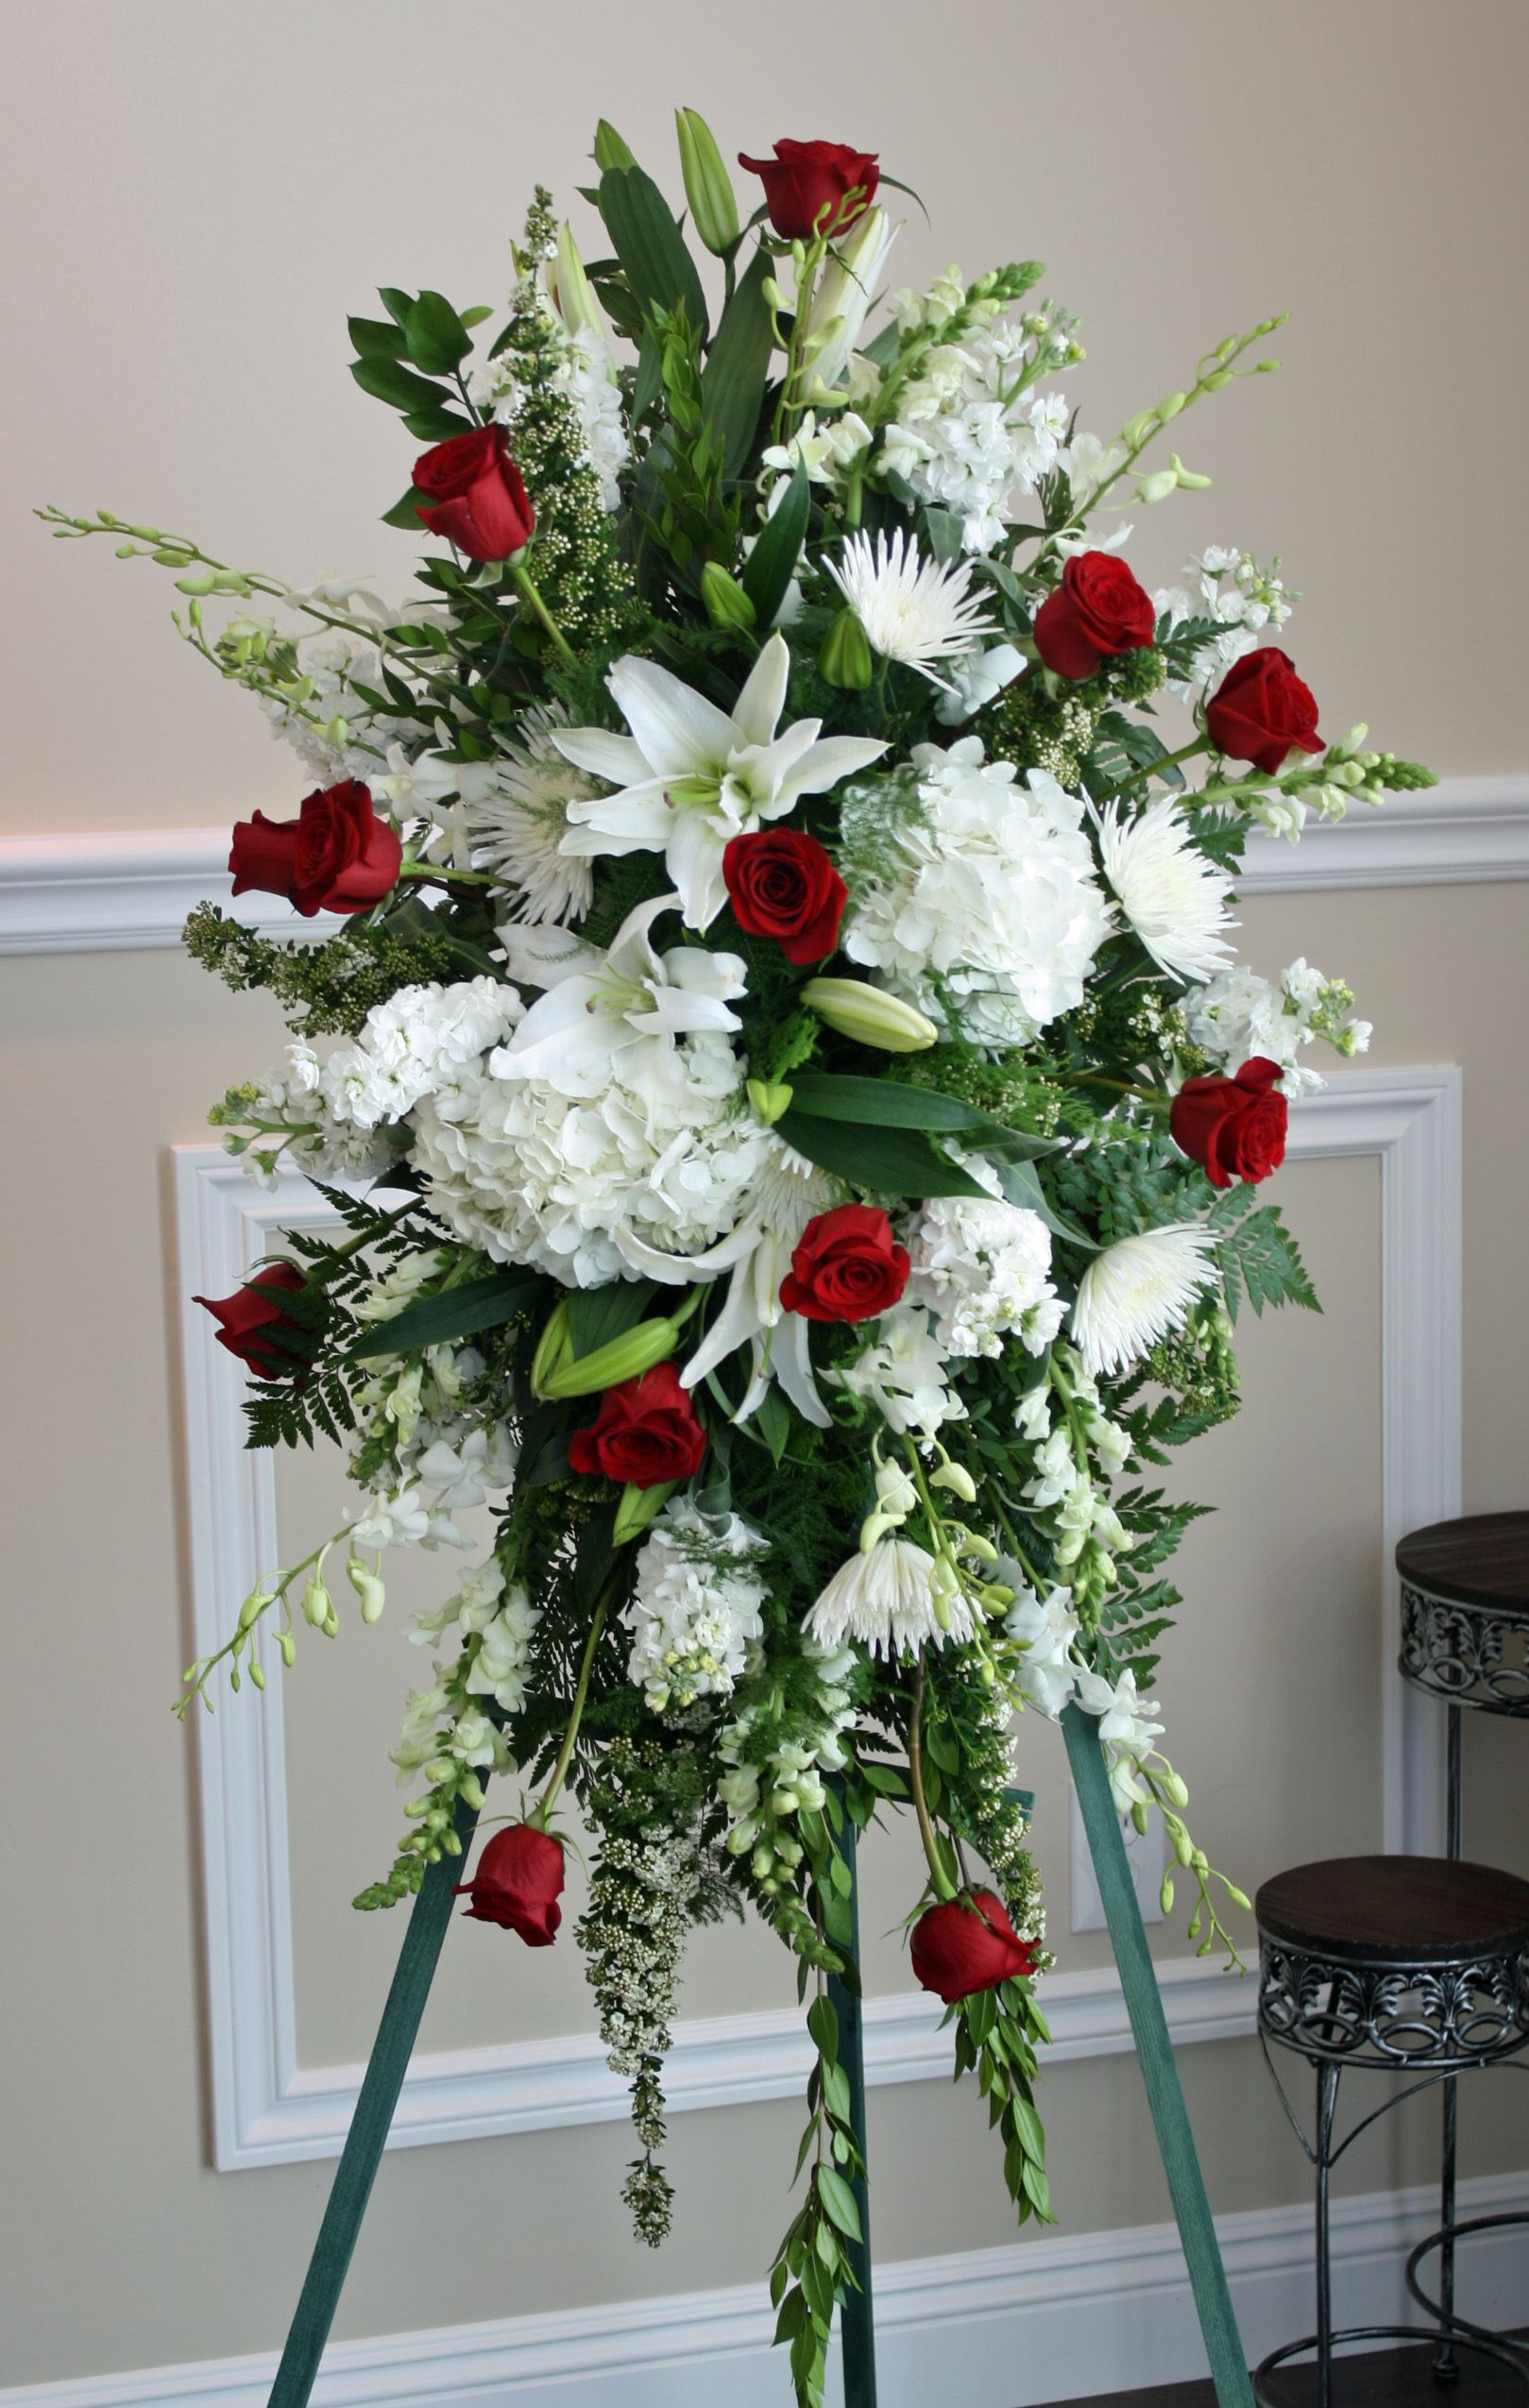 Sympathy flowers funeral flower arrangements unique floral sympathy flowers funeral flower arrangements unique floral designs dhlflorist Gallery